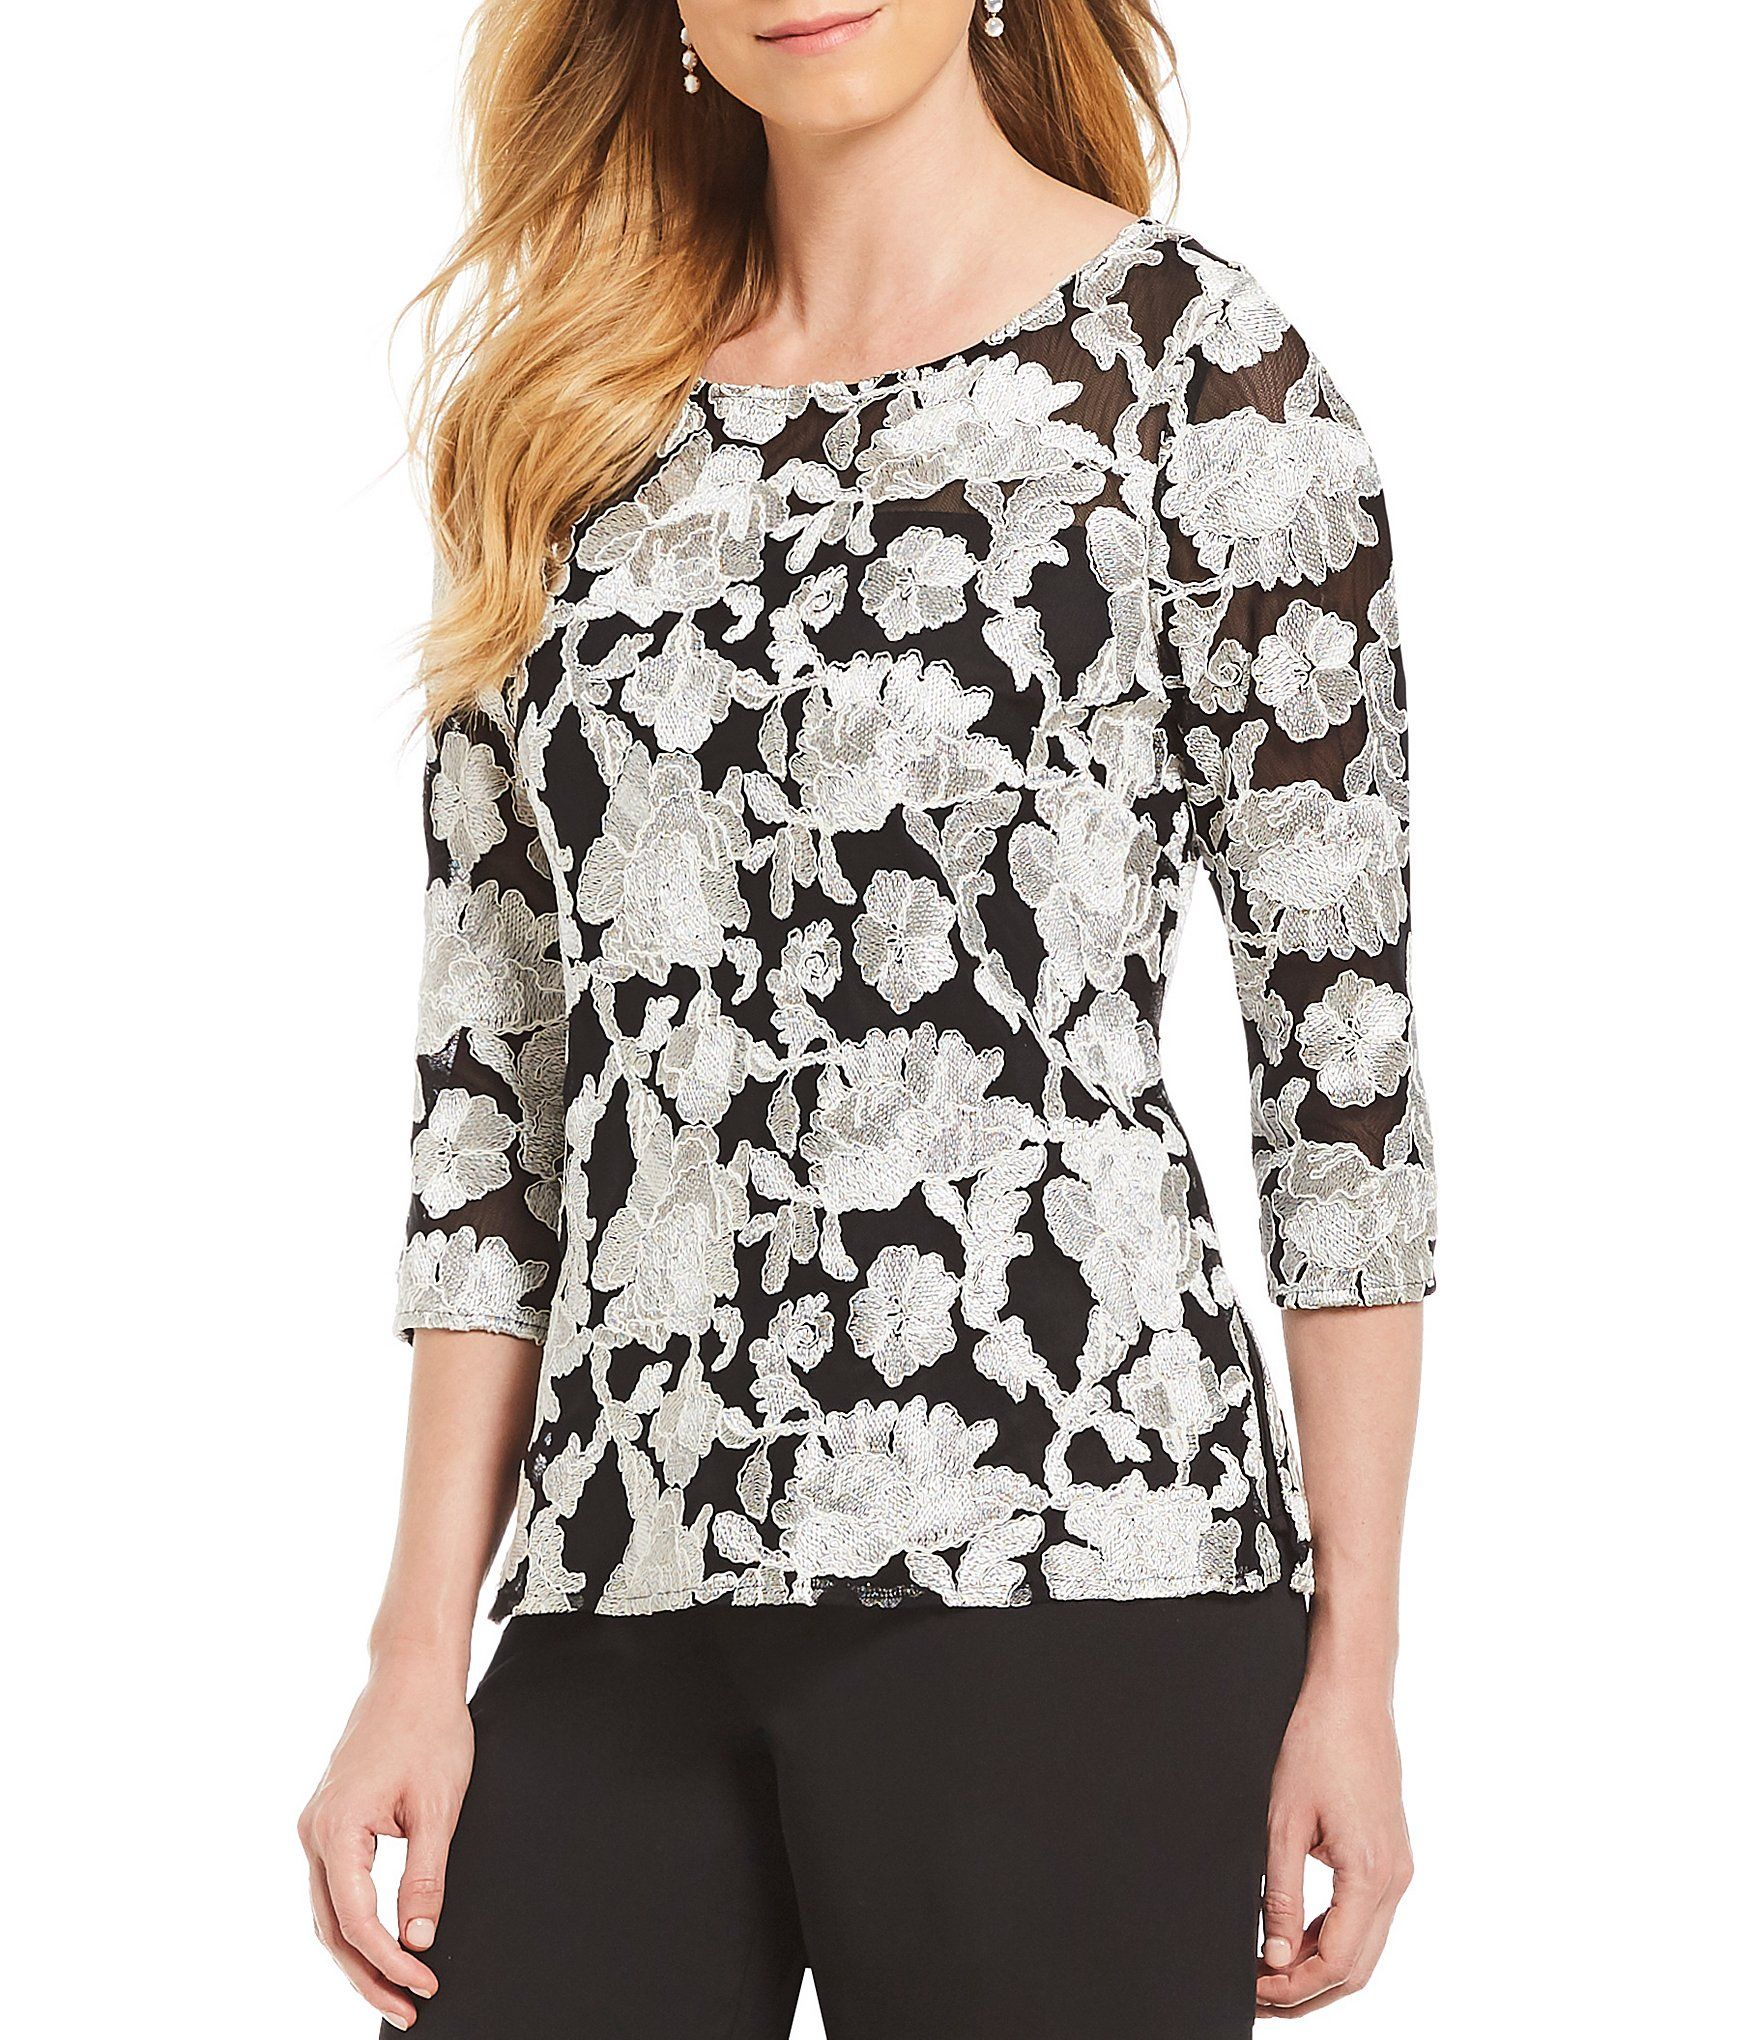 b895882c4c2f56 Shop for Alex Evenings 3/4 Embroidered Illusion Blouse at Dillards.com.  Visit Dillards.com to find clothing, accessories, shoes, cosmetics & more.